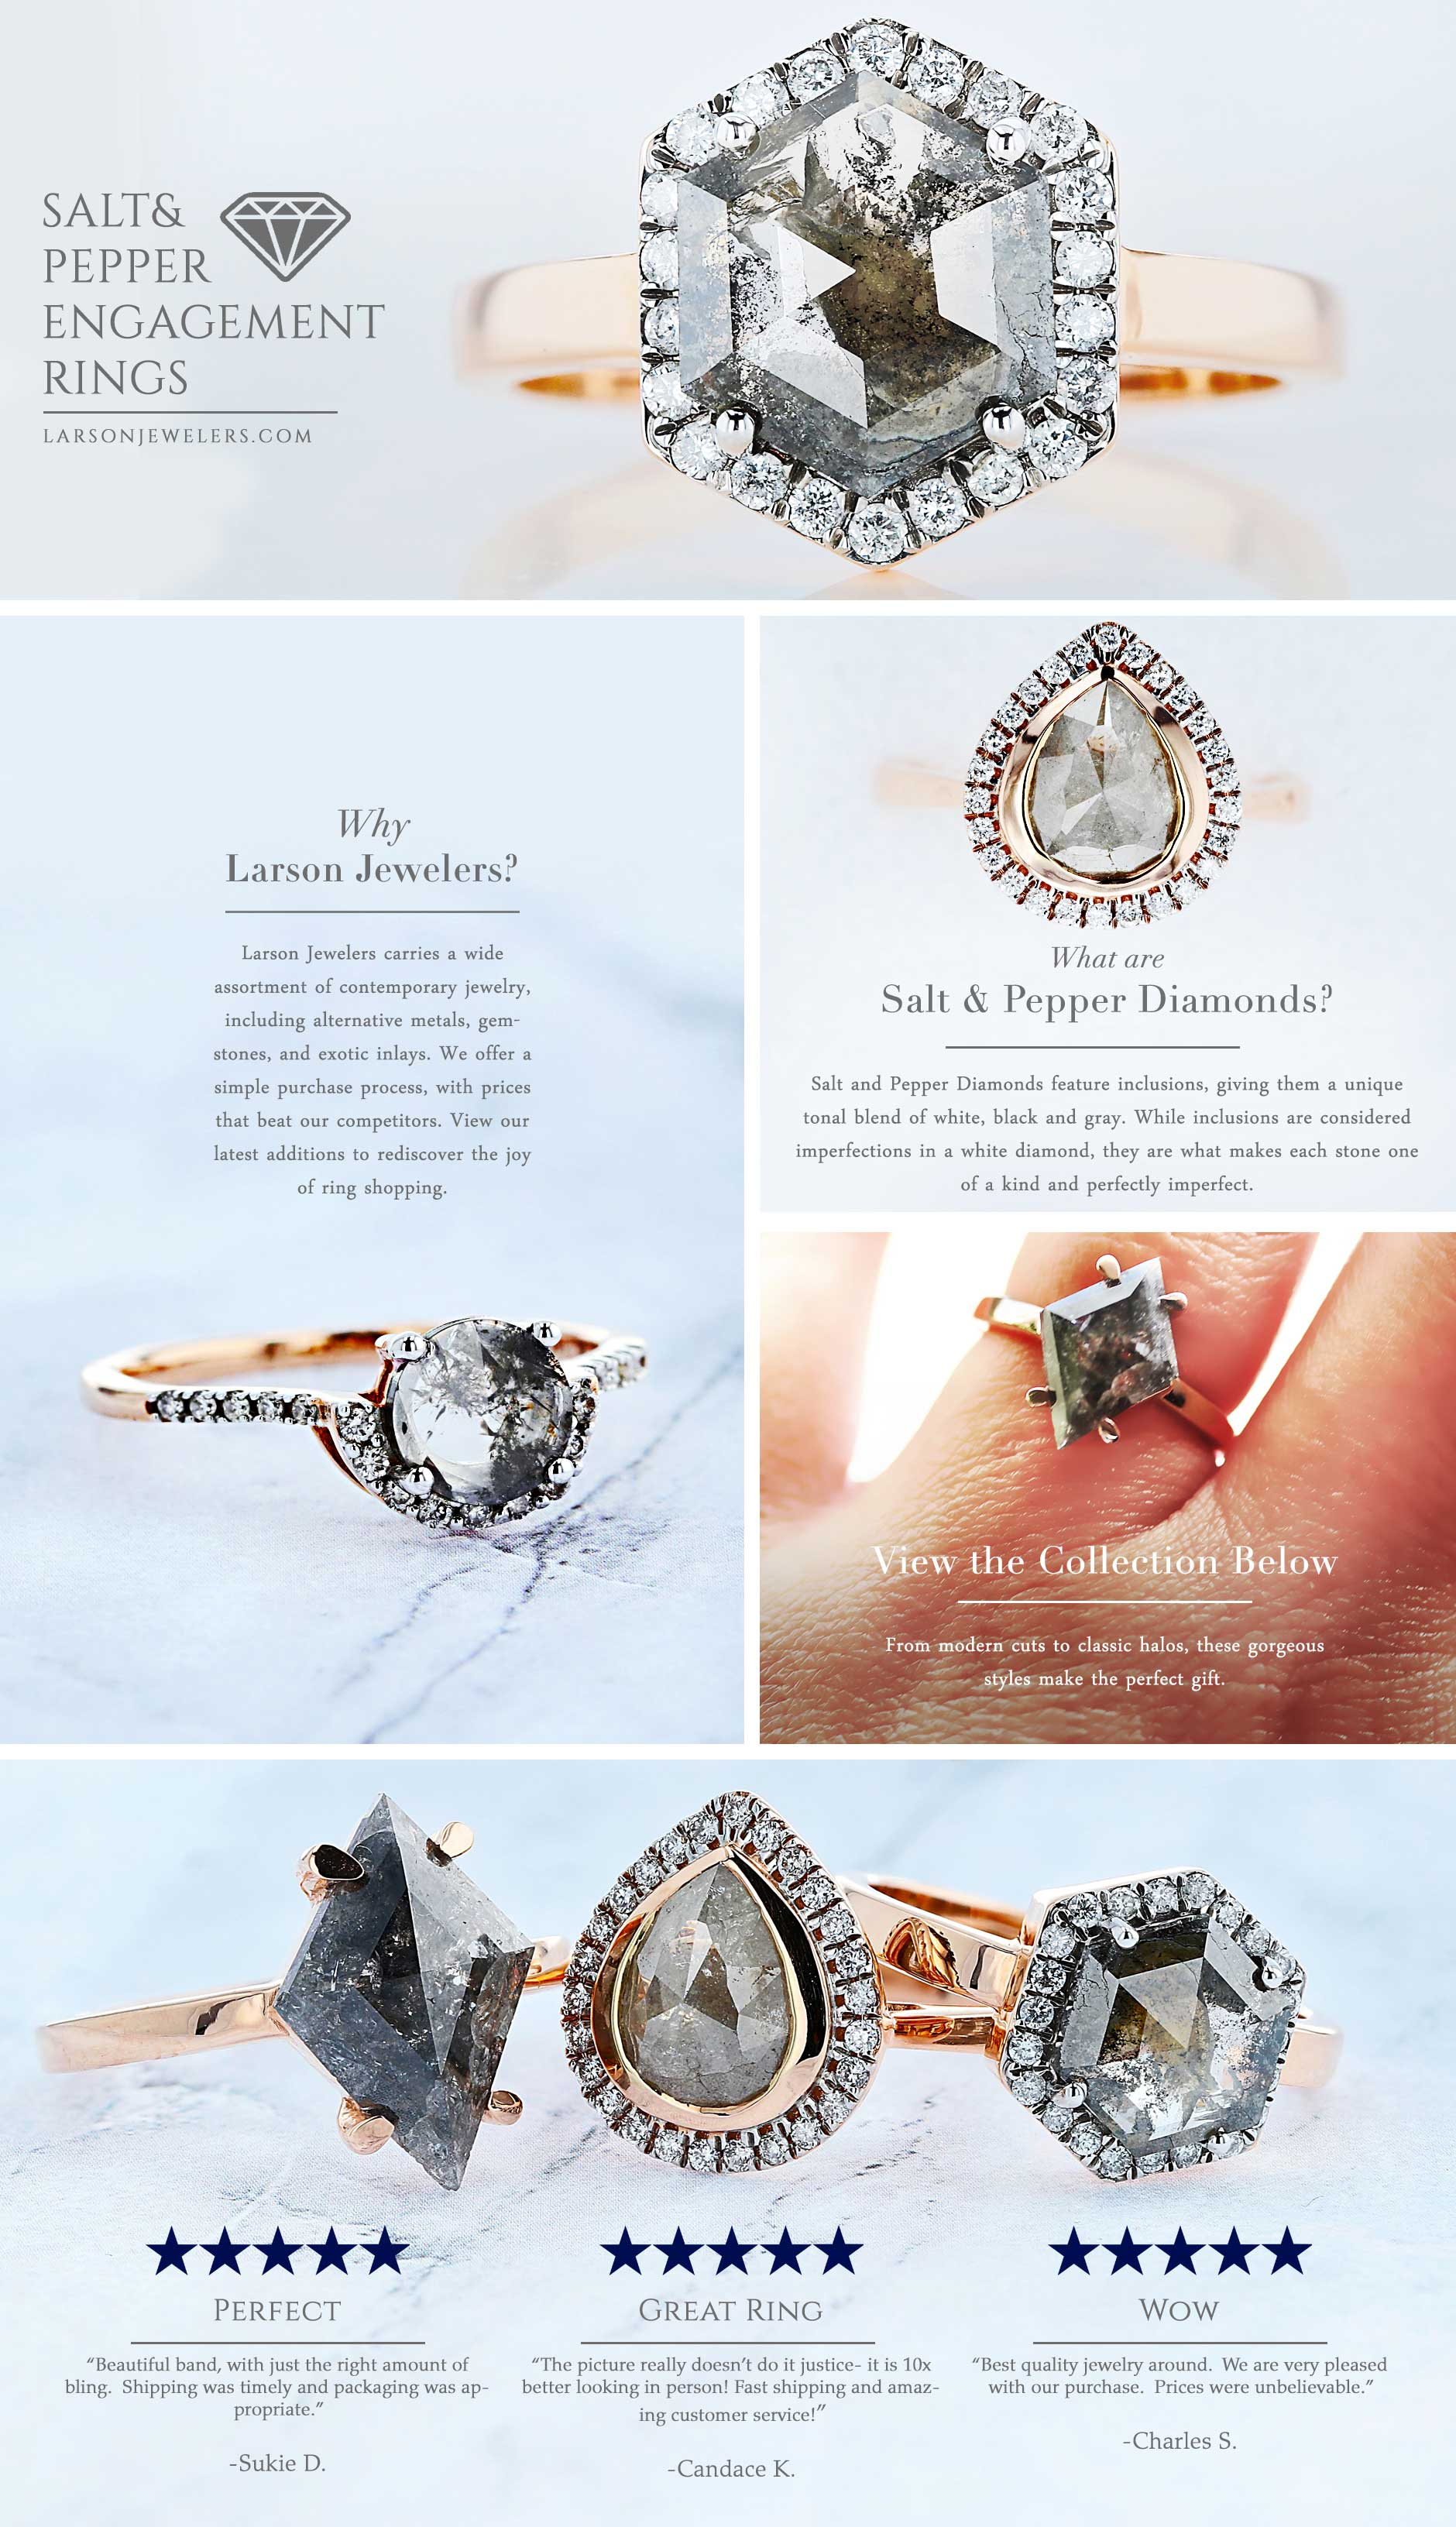 Salt & Pepper Engagement Rings